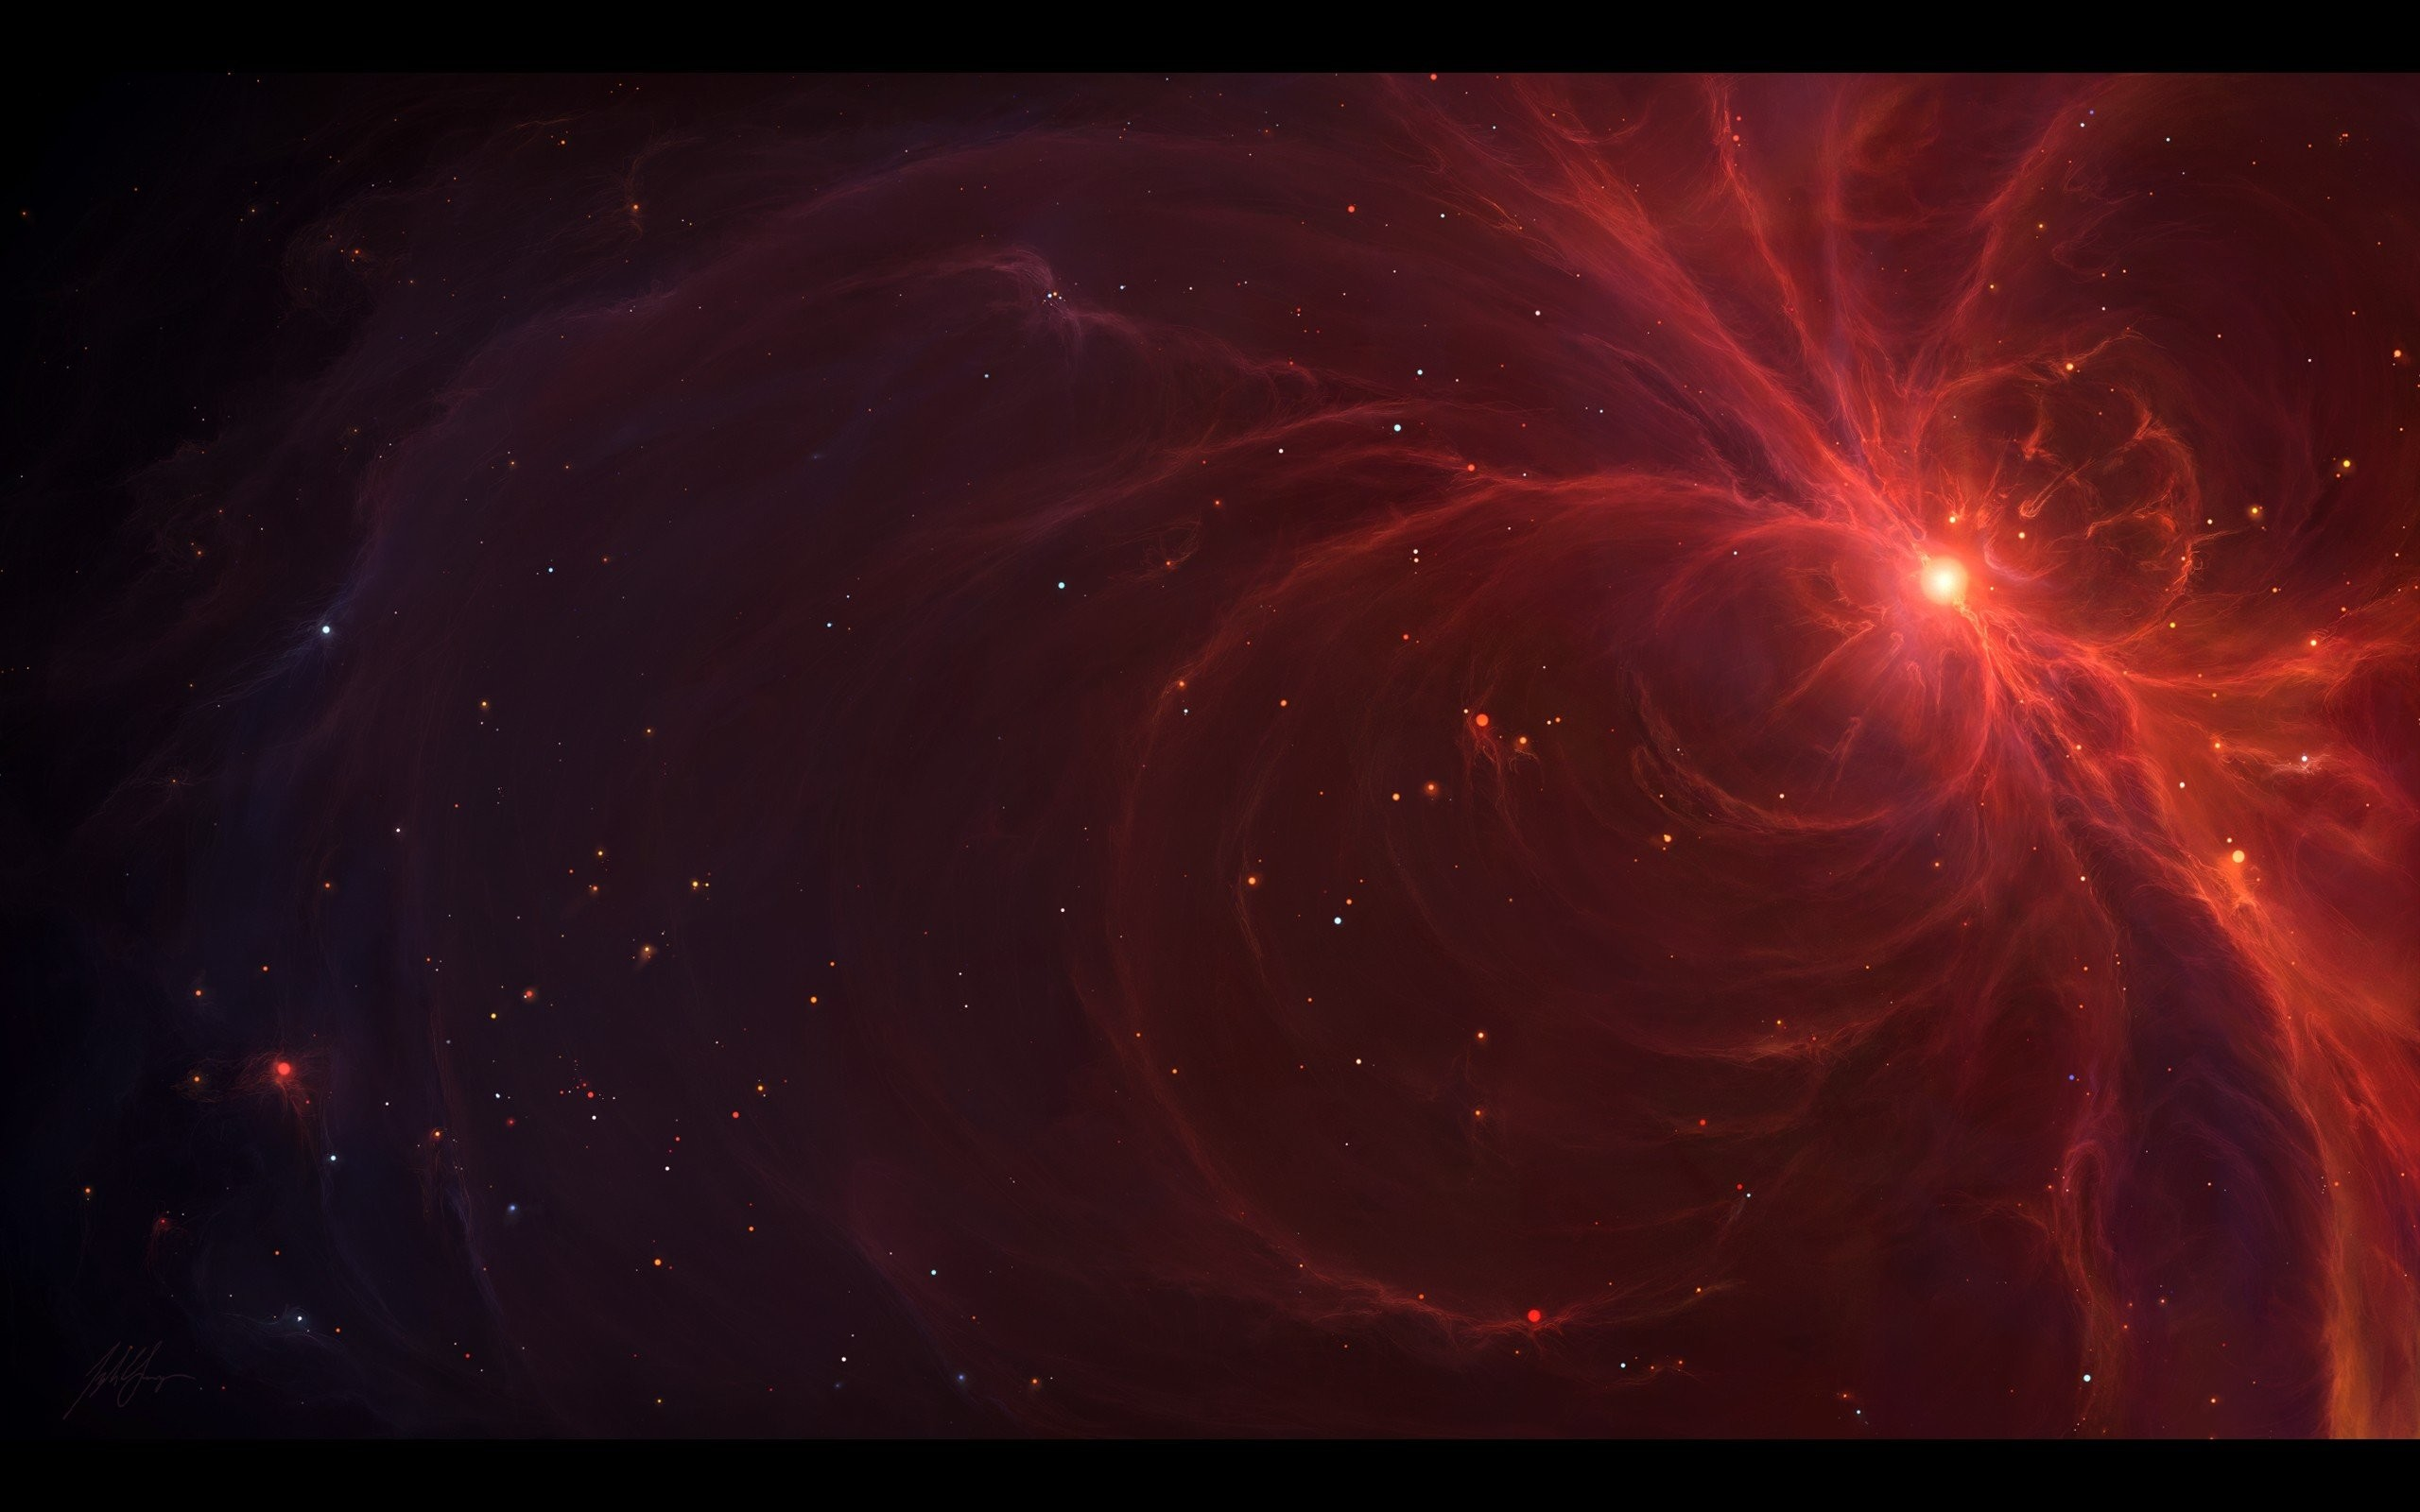 Outer space red stars galaxies digital art artwork Tyler Young wallpaper |  | 254171 | WallpaperUP